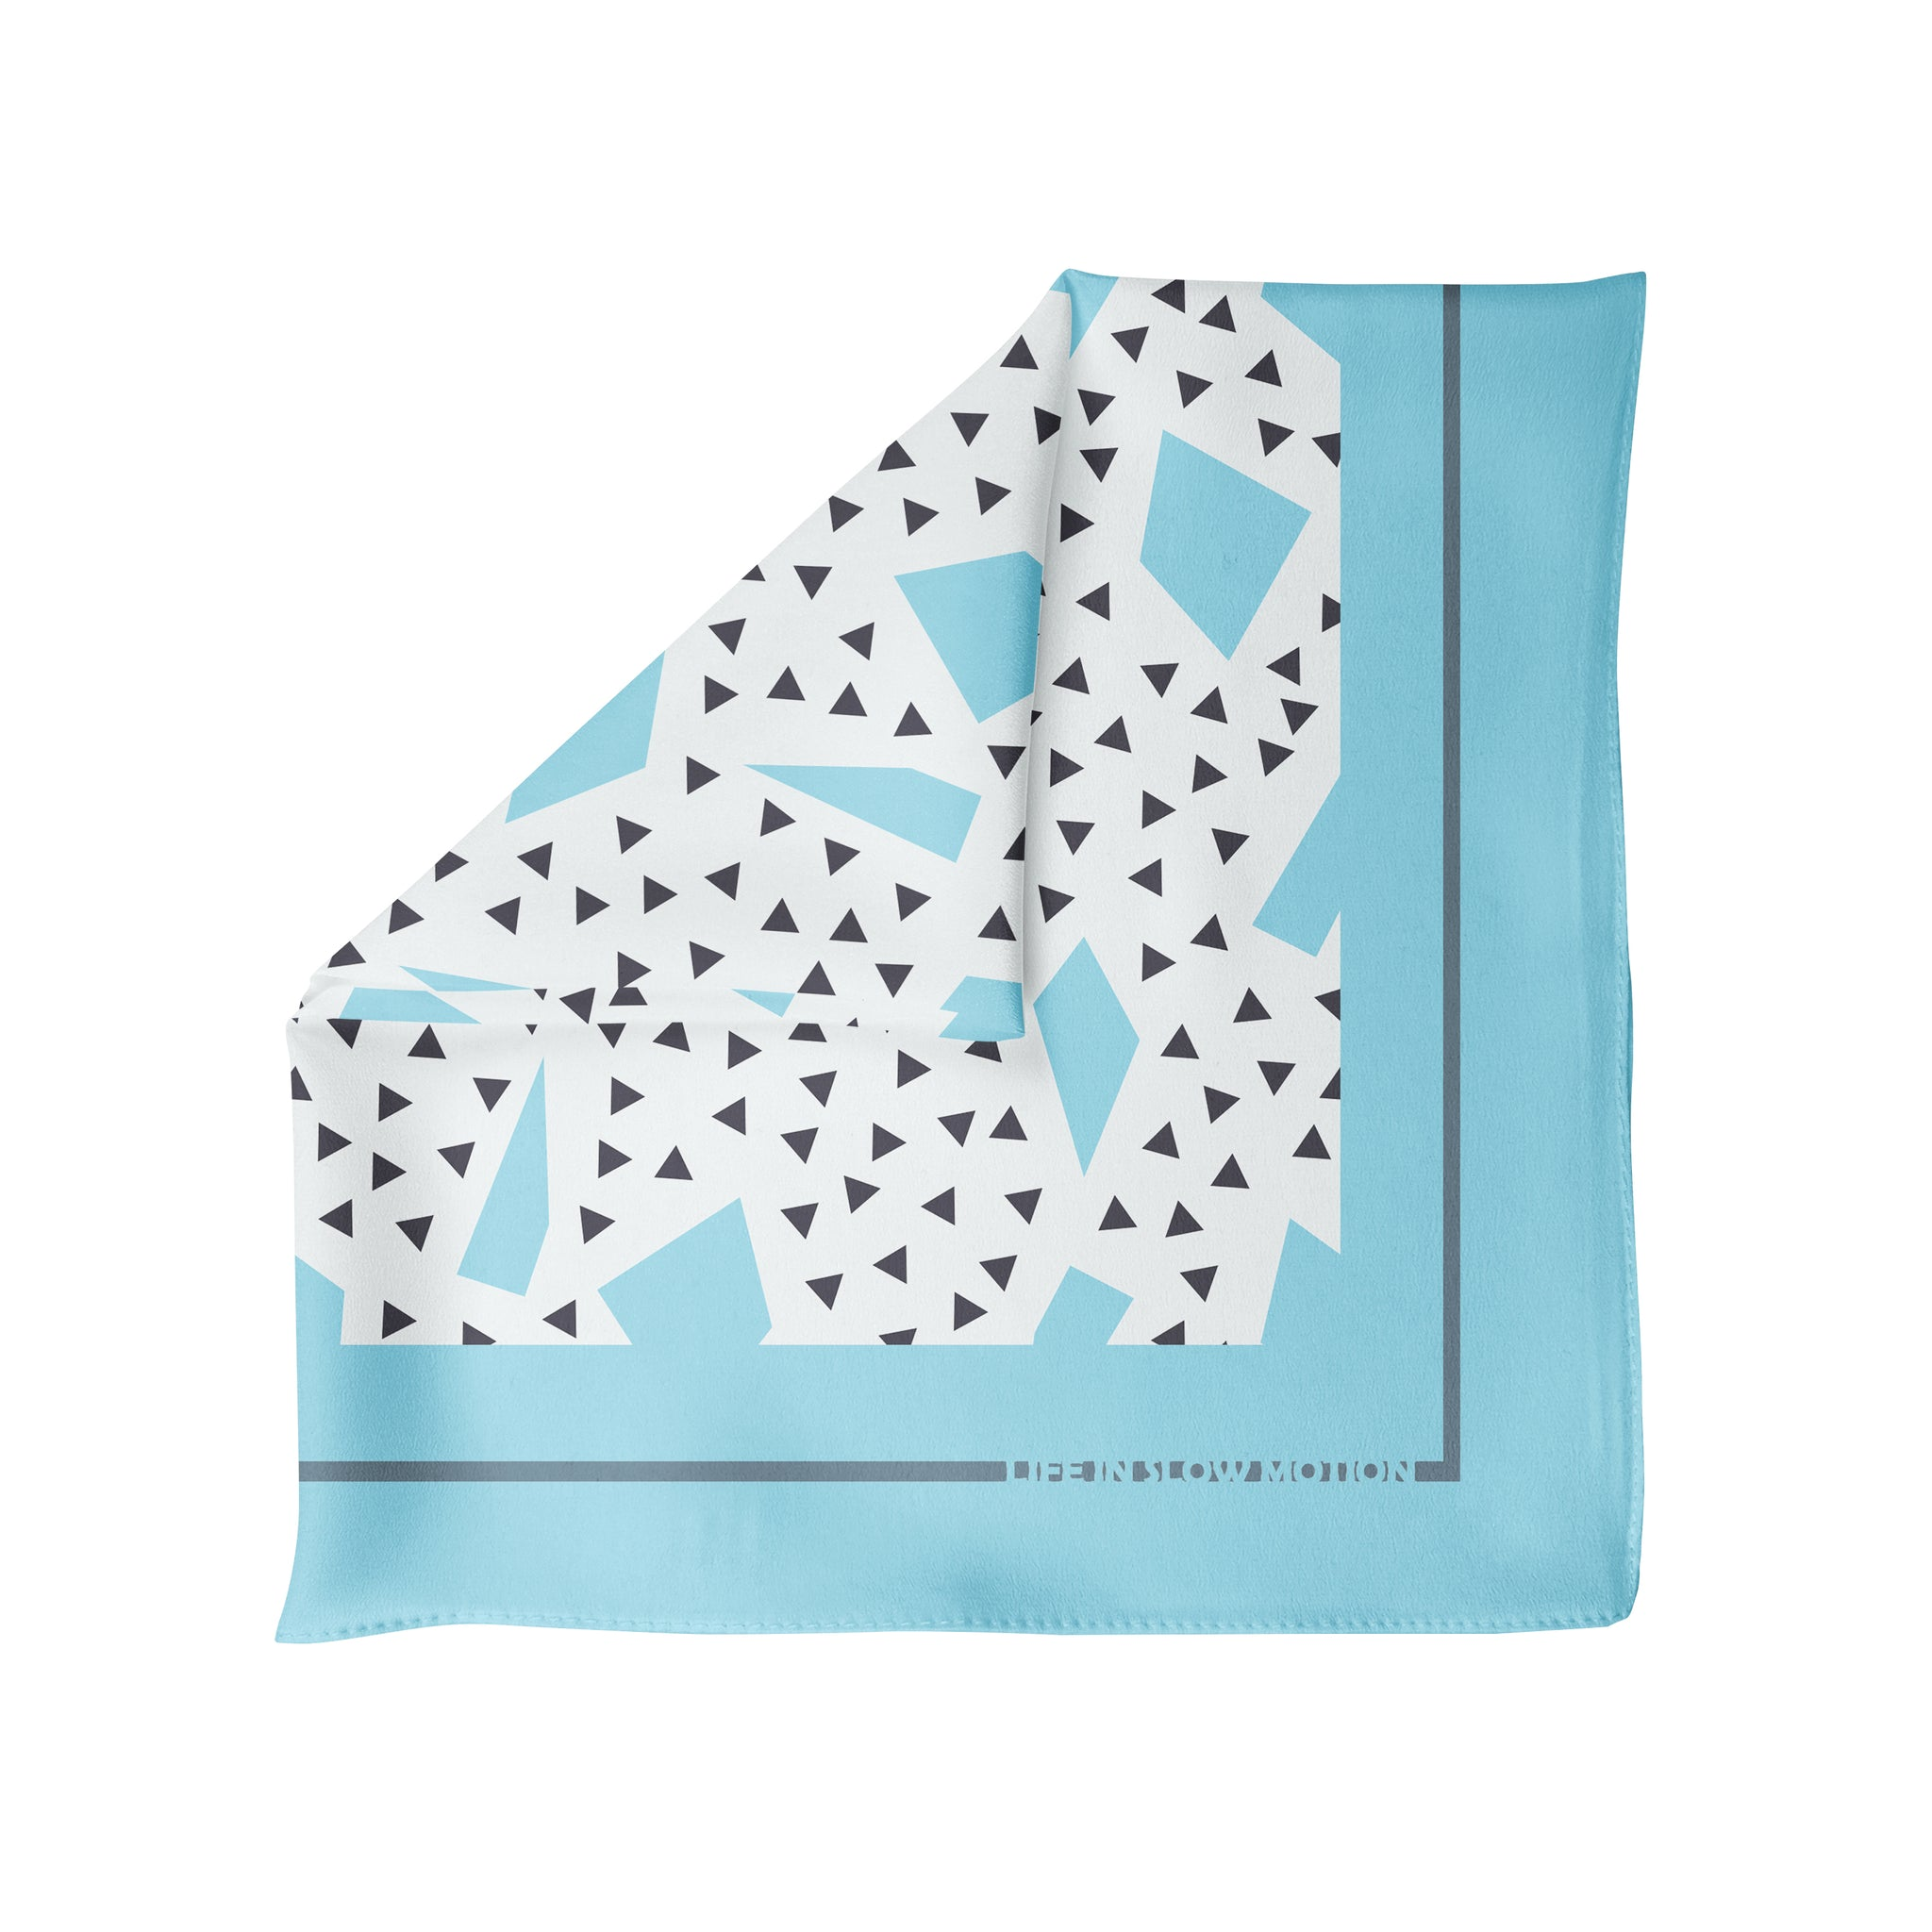 San Remo - Silk Pocket Square